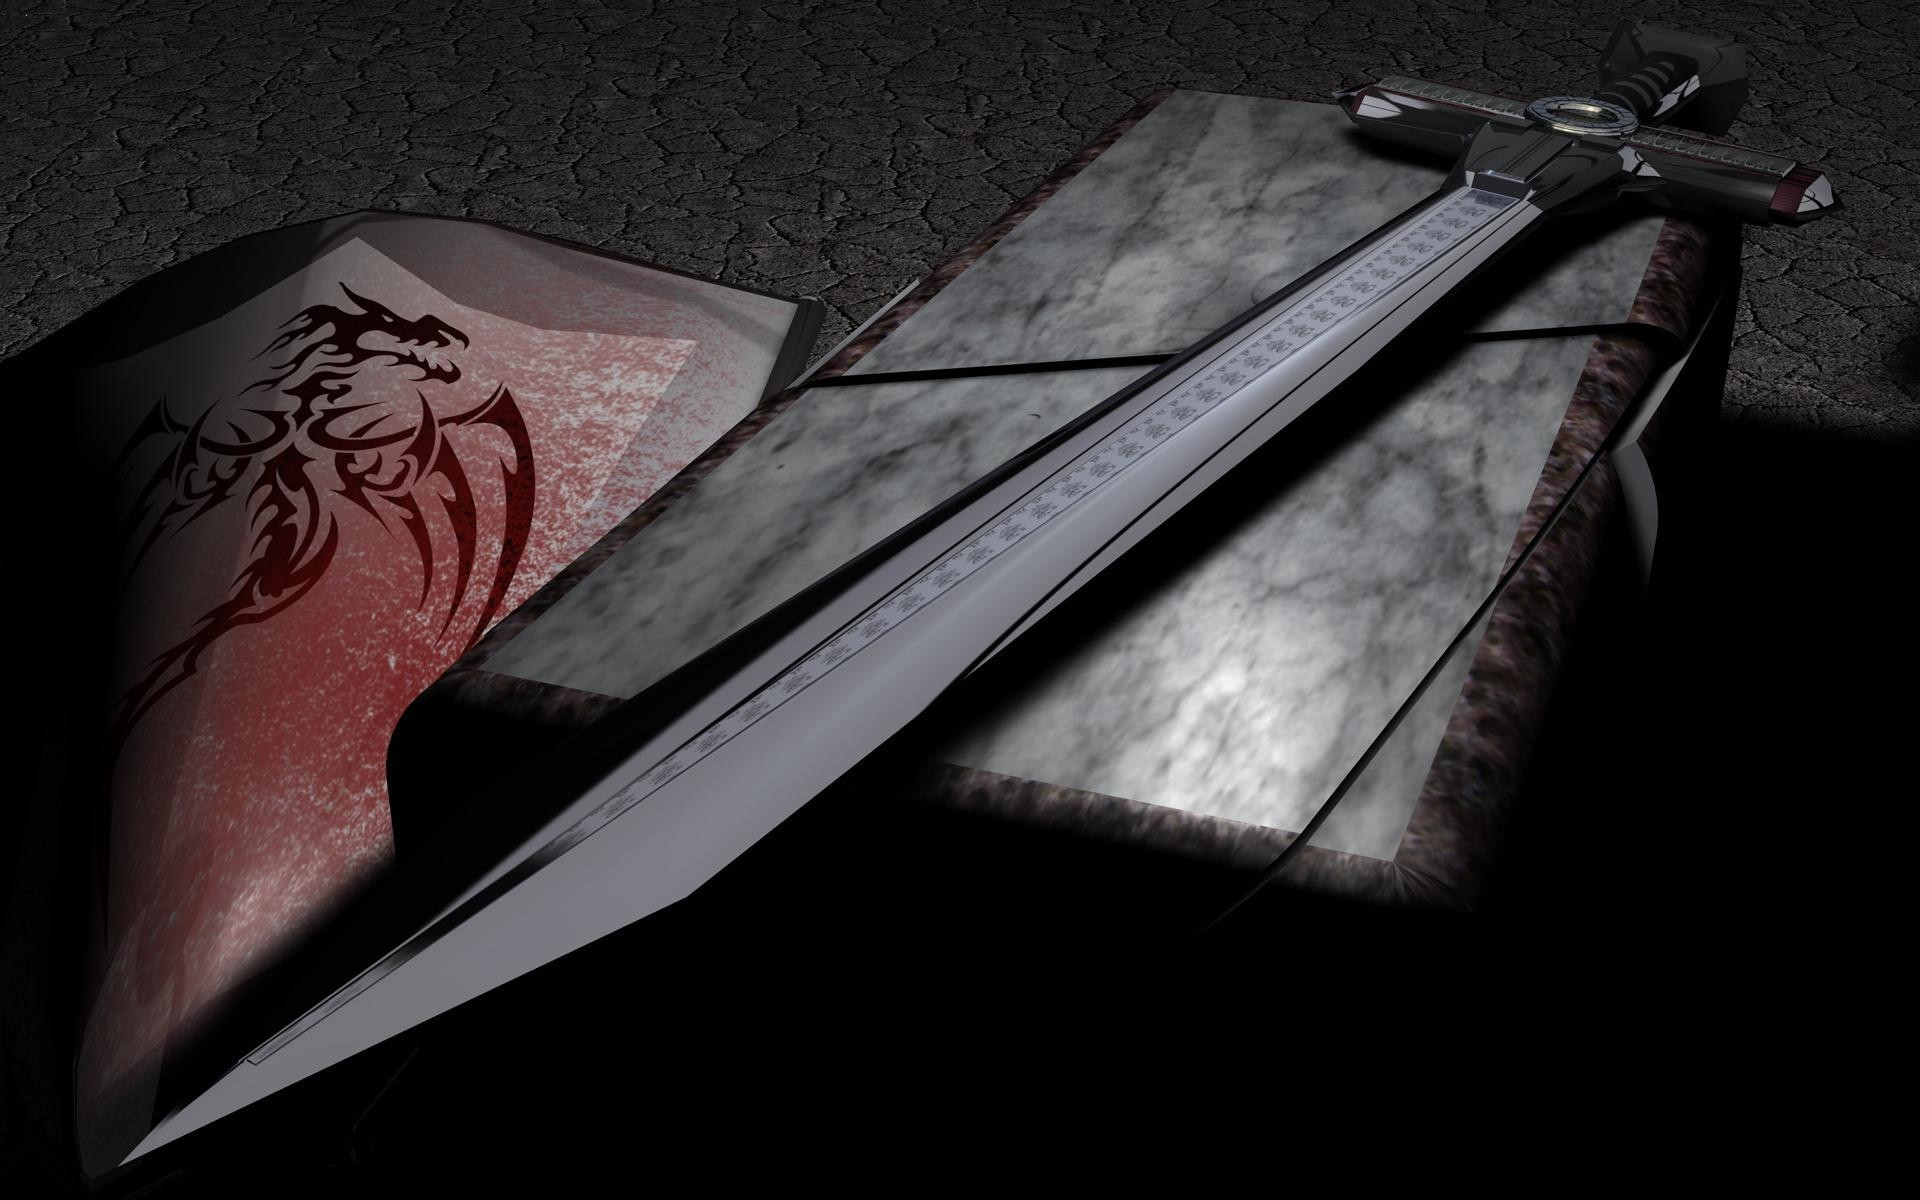 Free Download Black Sword Hd Wallpapers 1920x1200 For Your